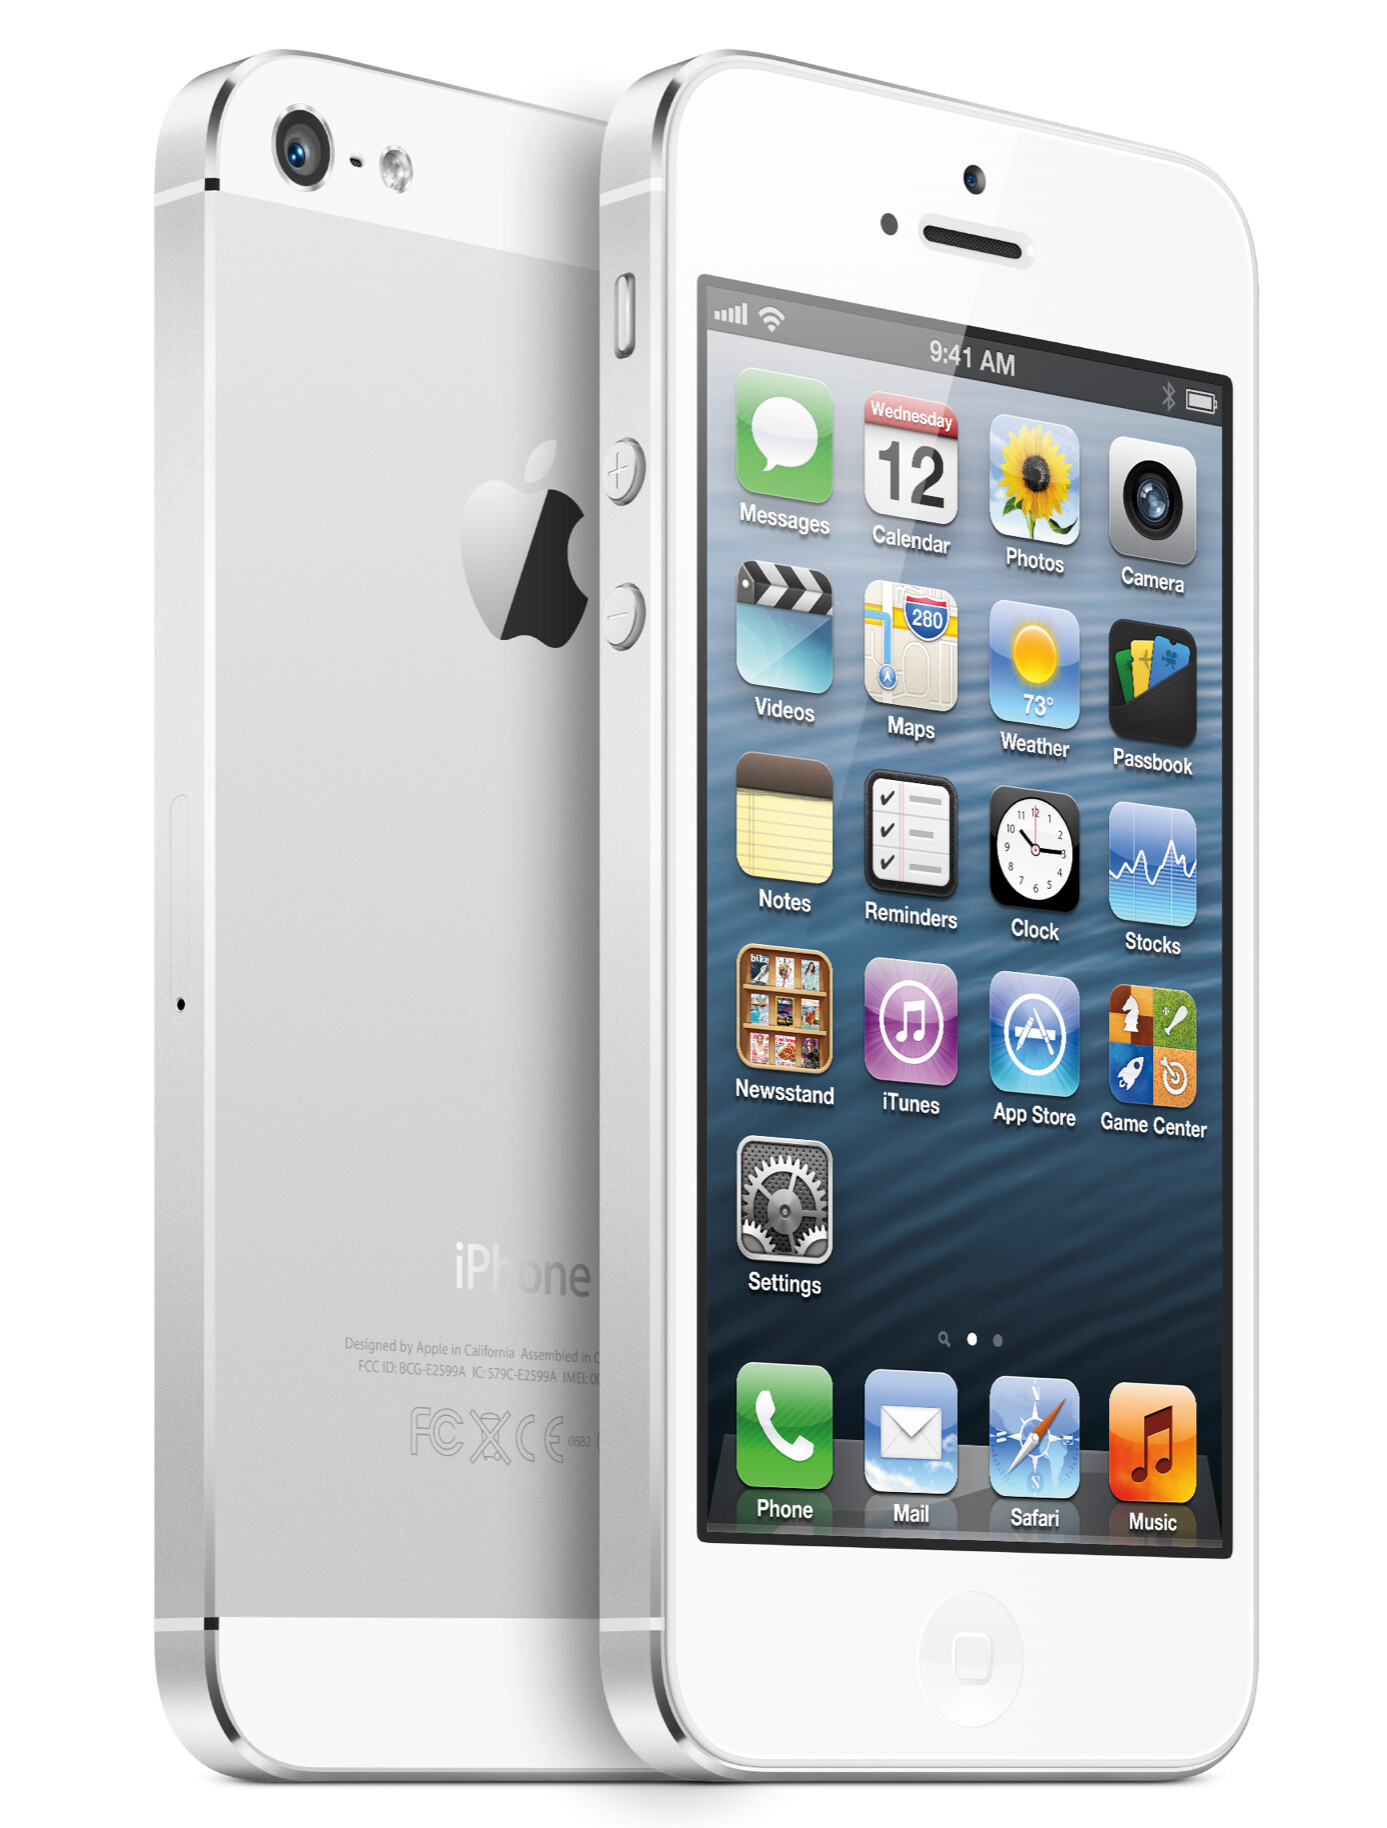 iphone 5 release date in malaysia large B-cell